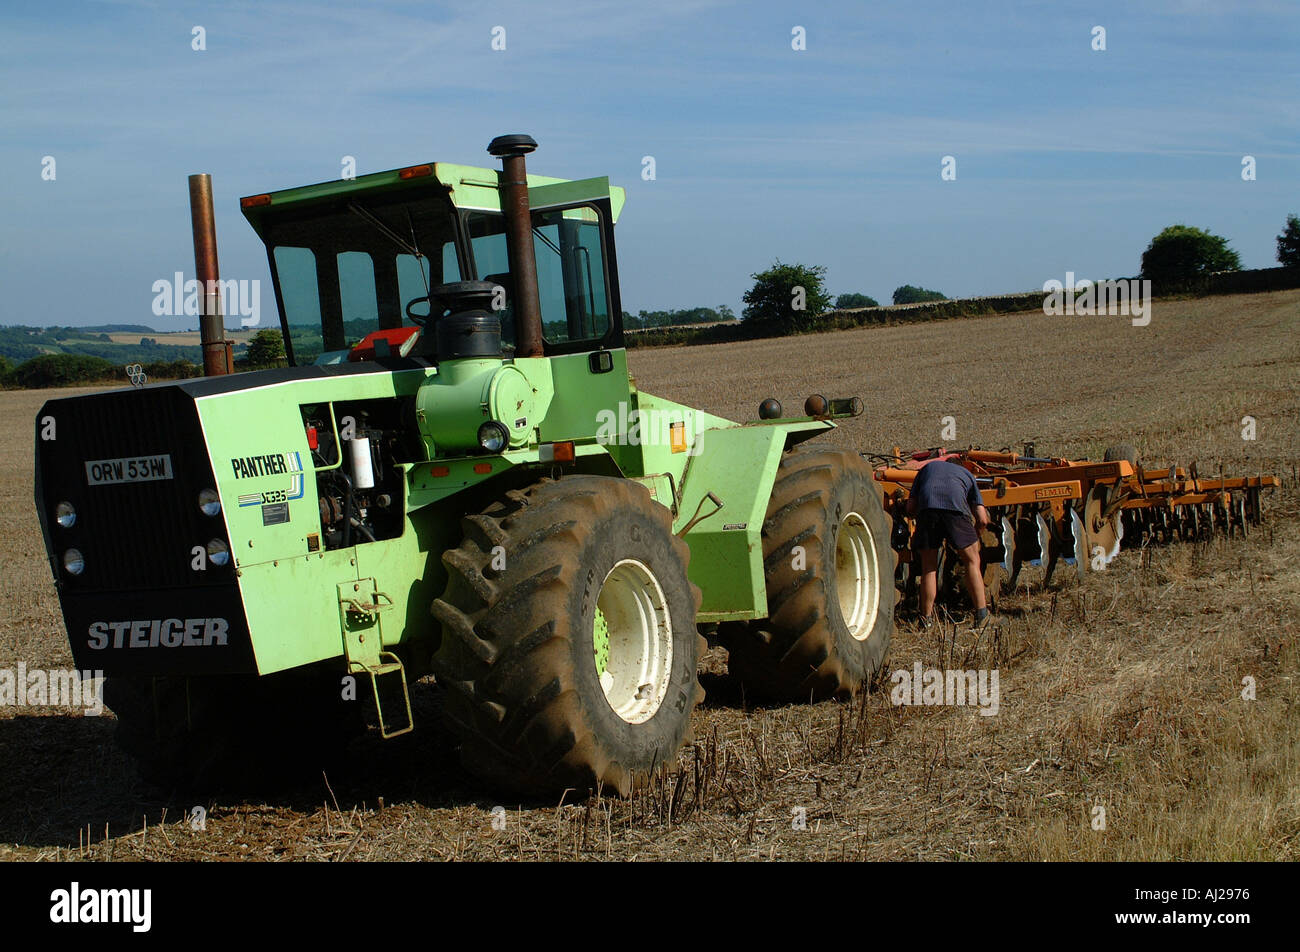 Tractor Pulling Train : Steiger tractor pulling cultivation tools in train